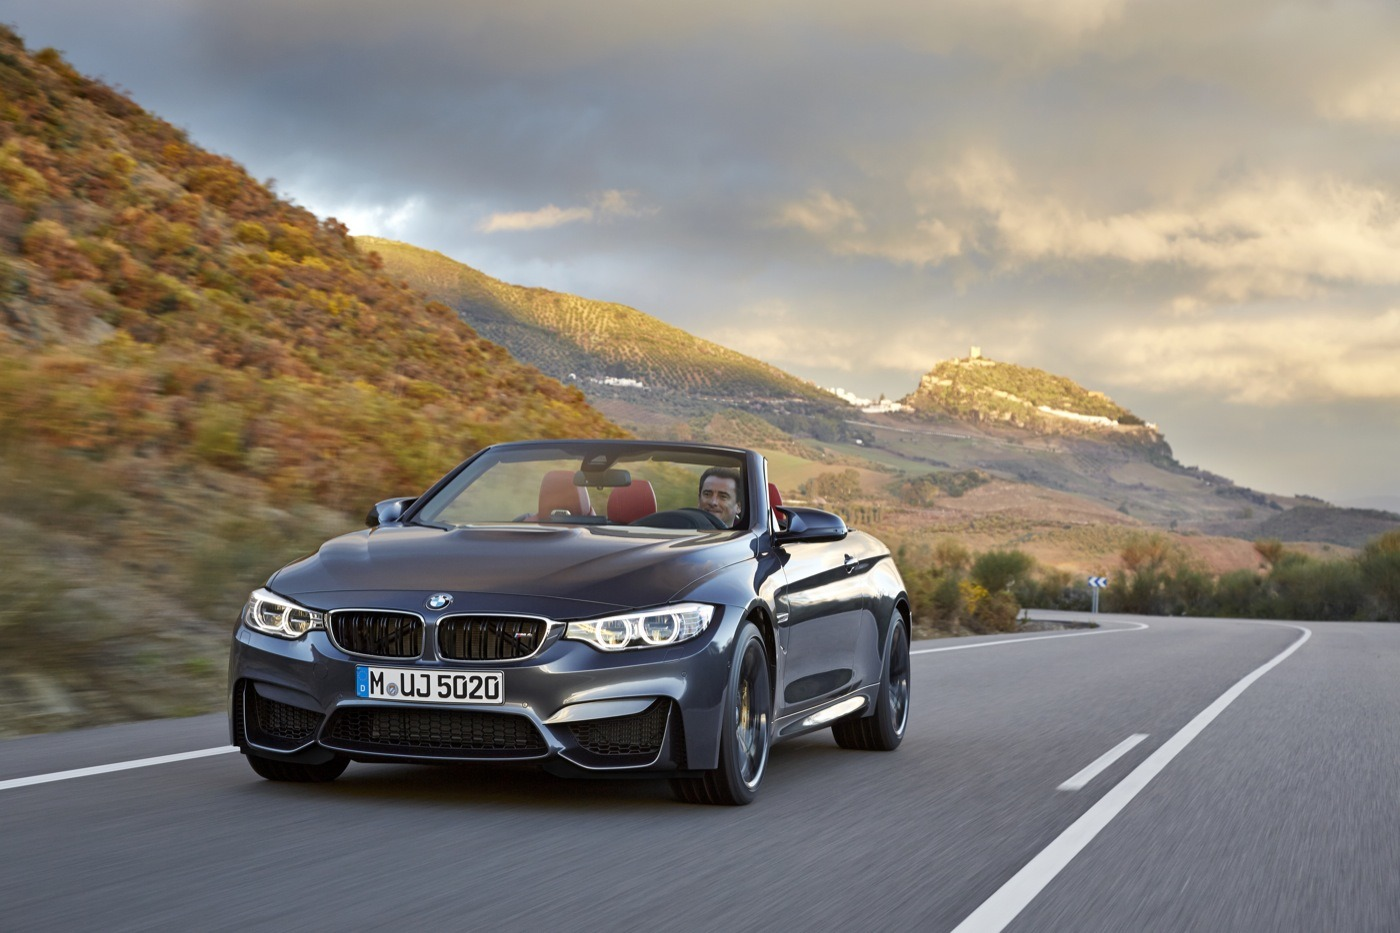 2019 BMW M4 Convertible photo - 2